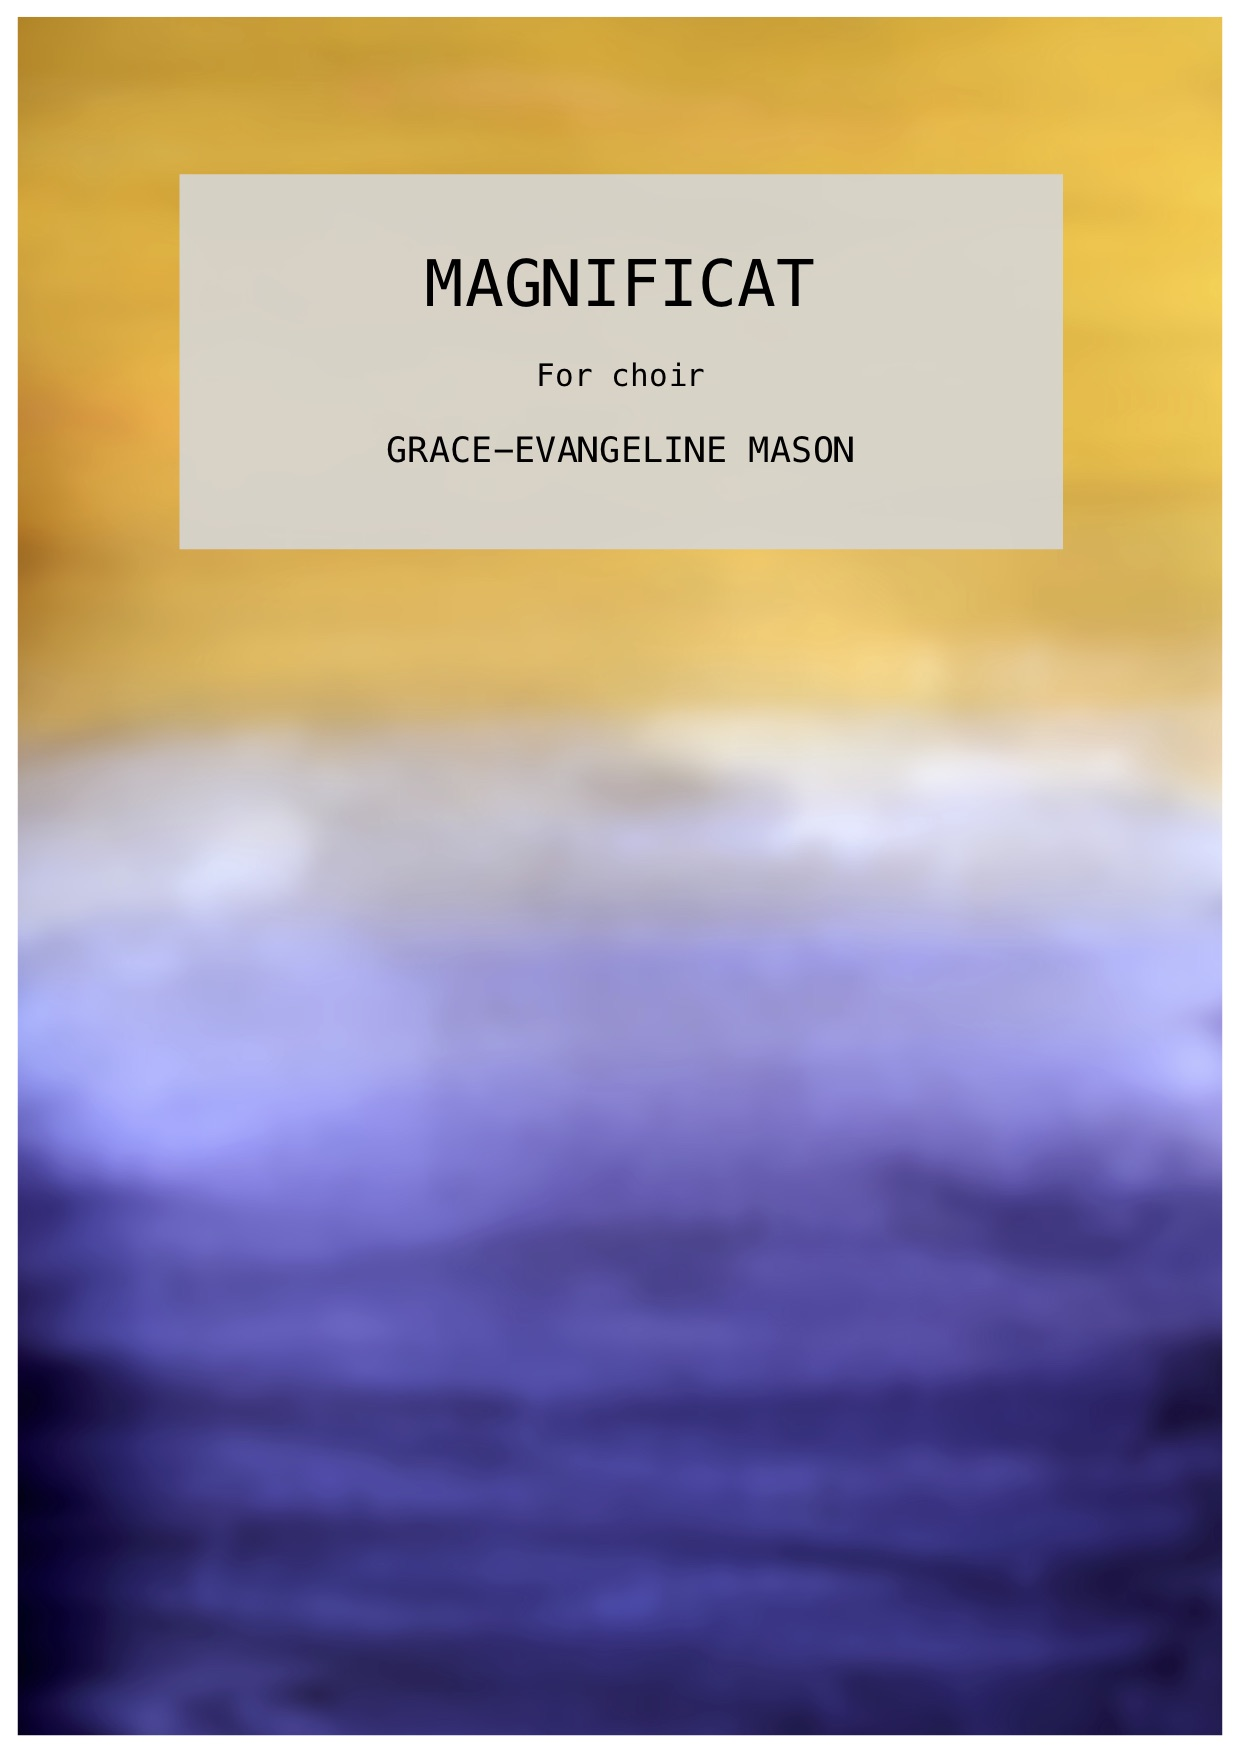 'MAGNIFICAT' (2019) - for SSAATTBB ChoirApprox. Duration: 6'Commissioned by Chelmsford Cathedral to celebrate the 20th Anniversary of their Girl's Choir, first performed 29/06/19A setting of the Magnificat in English©Cover Image: Painting by Grace-Evangeline Mason 2019